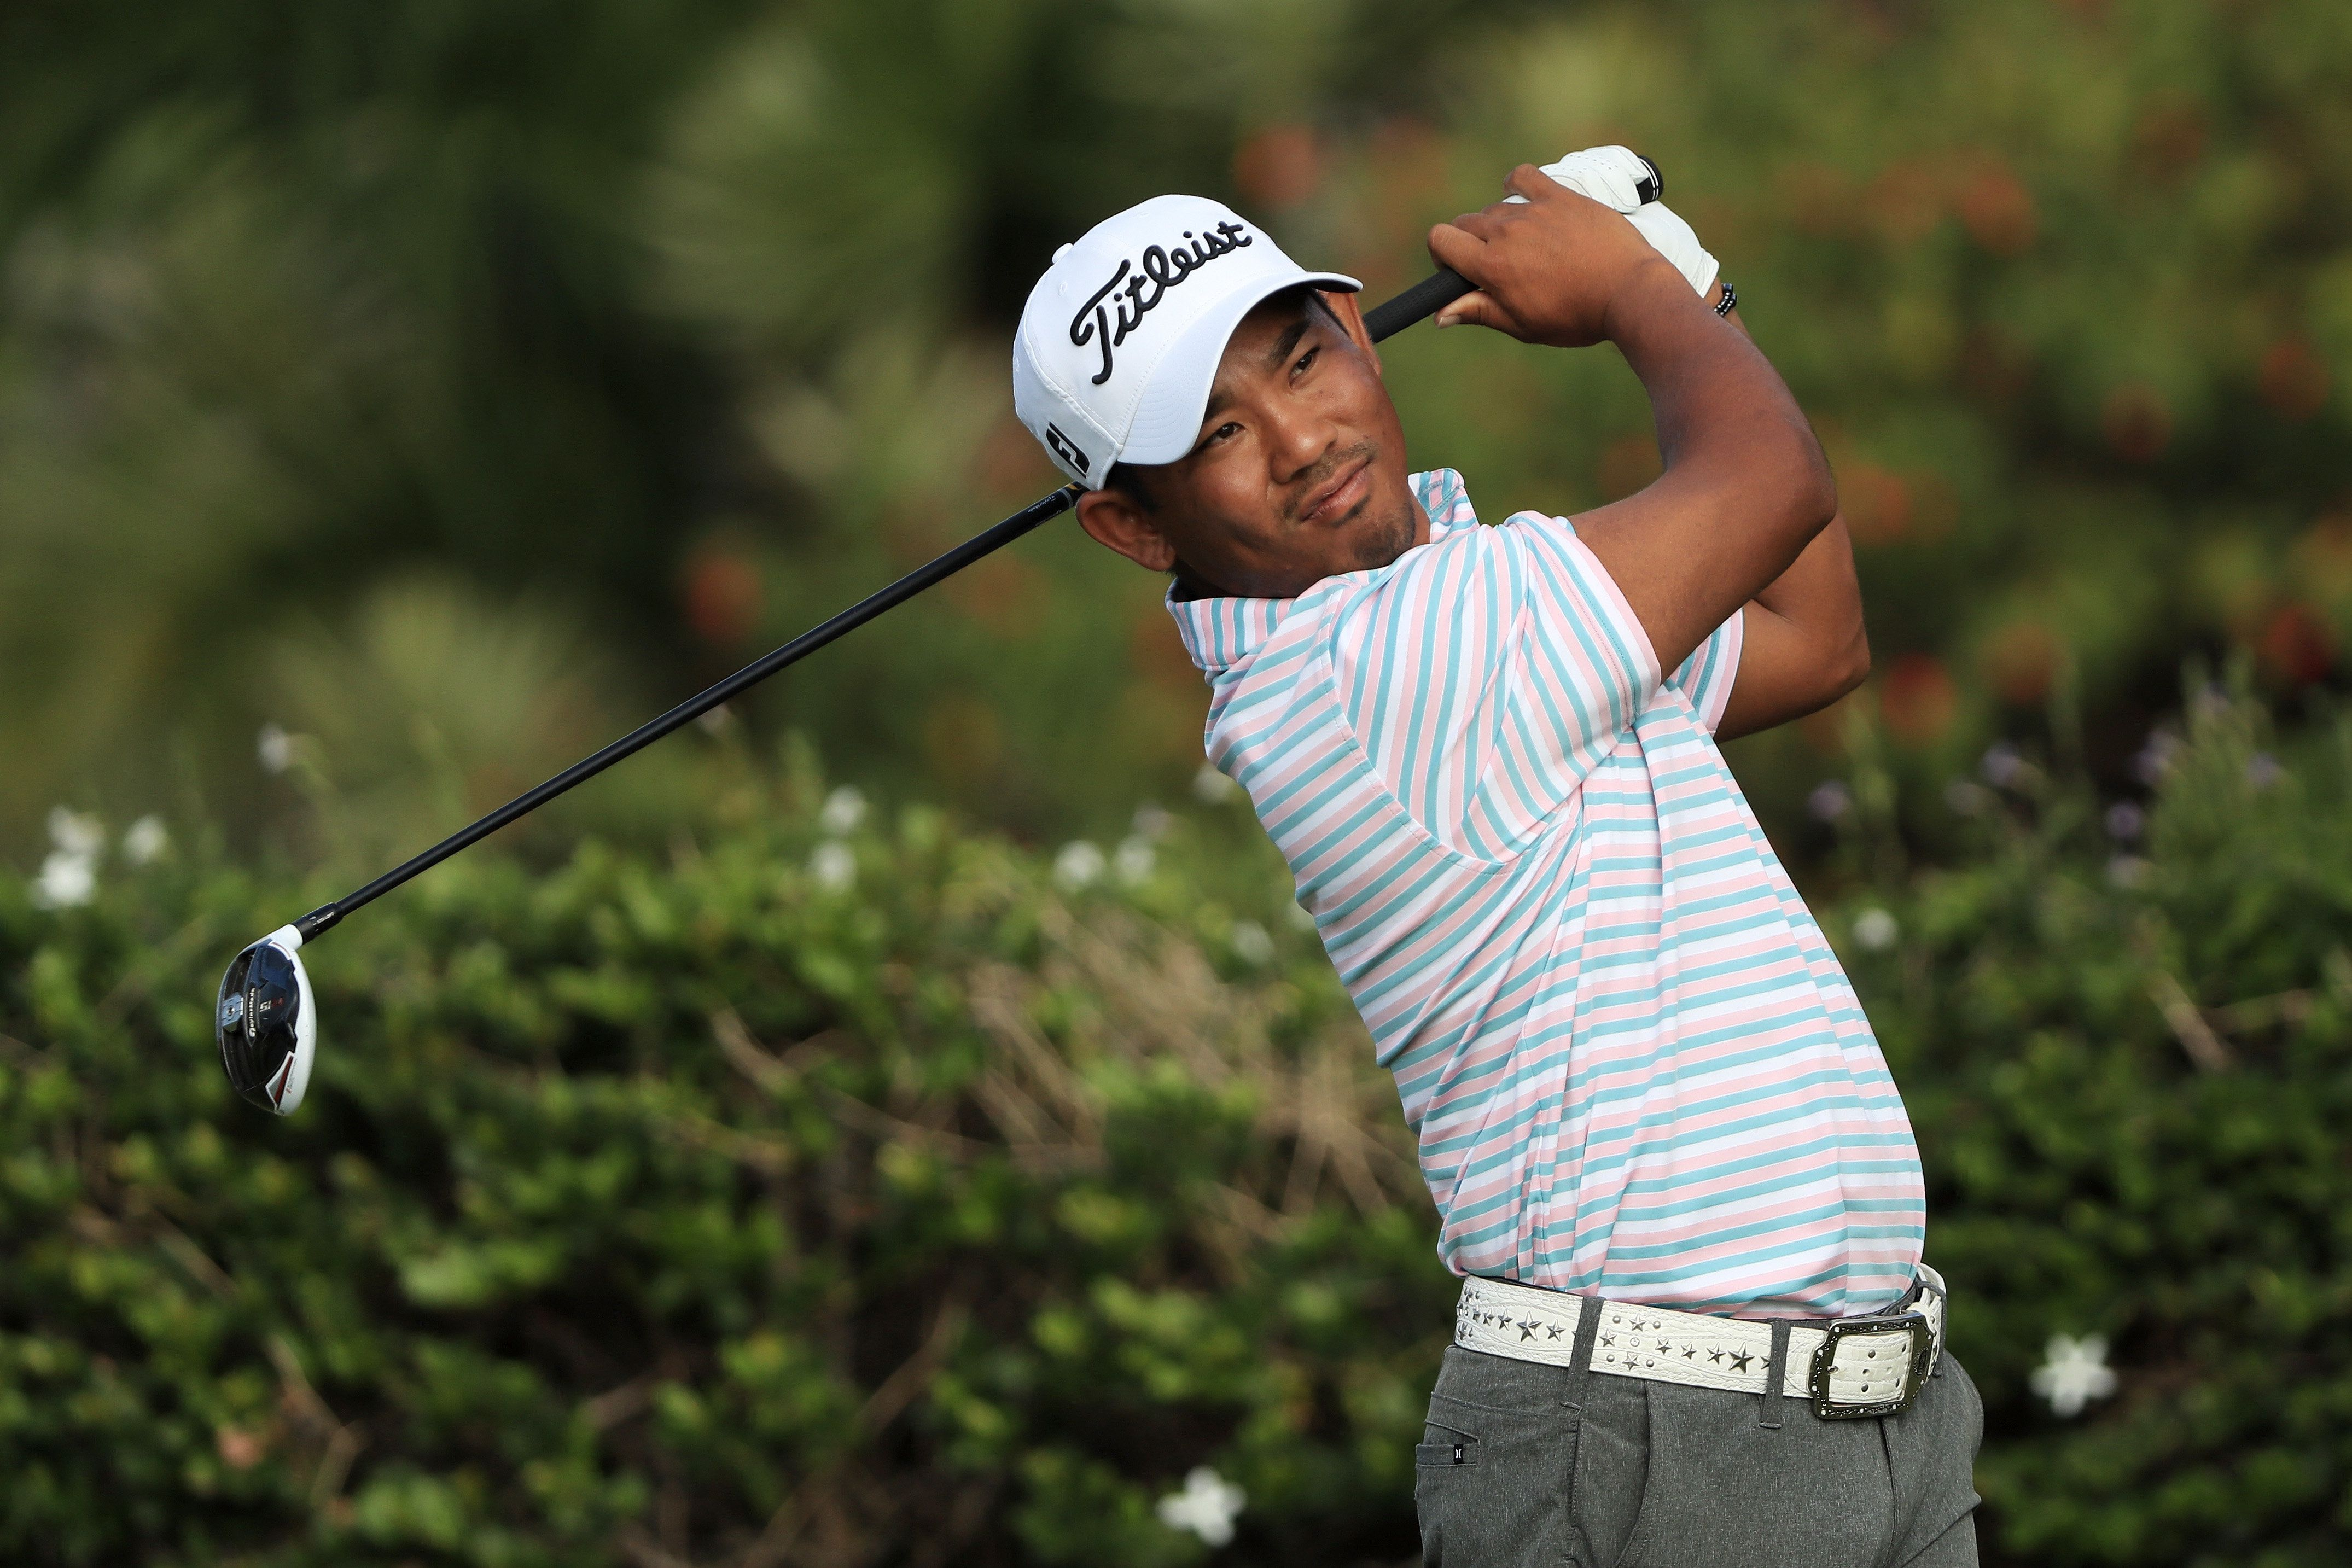 """Golfer Tadd Fujikawa said he was """"standing up for myself and the rest of the LGBTQ community."""""""